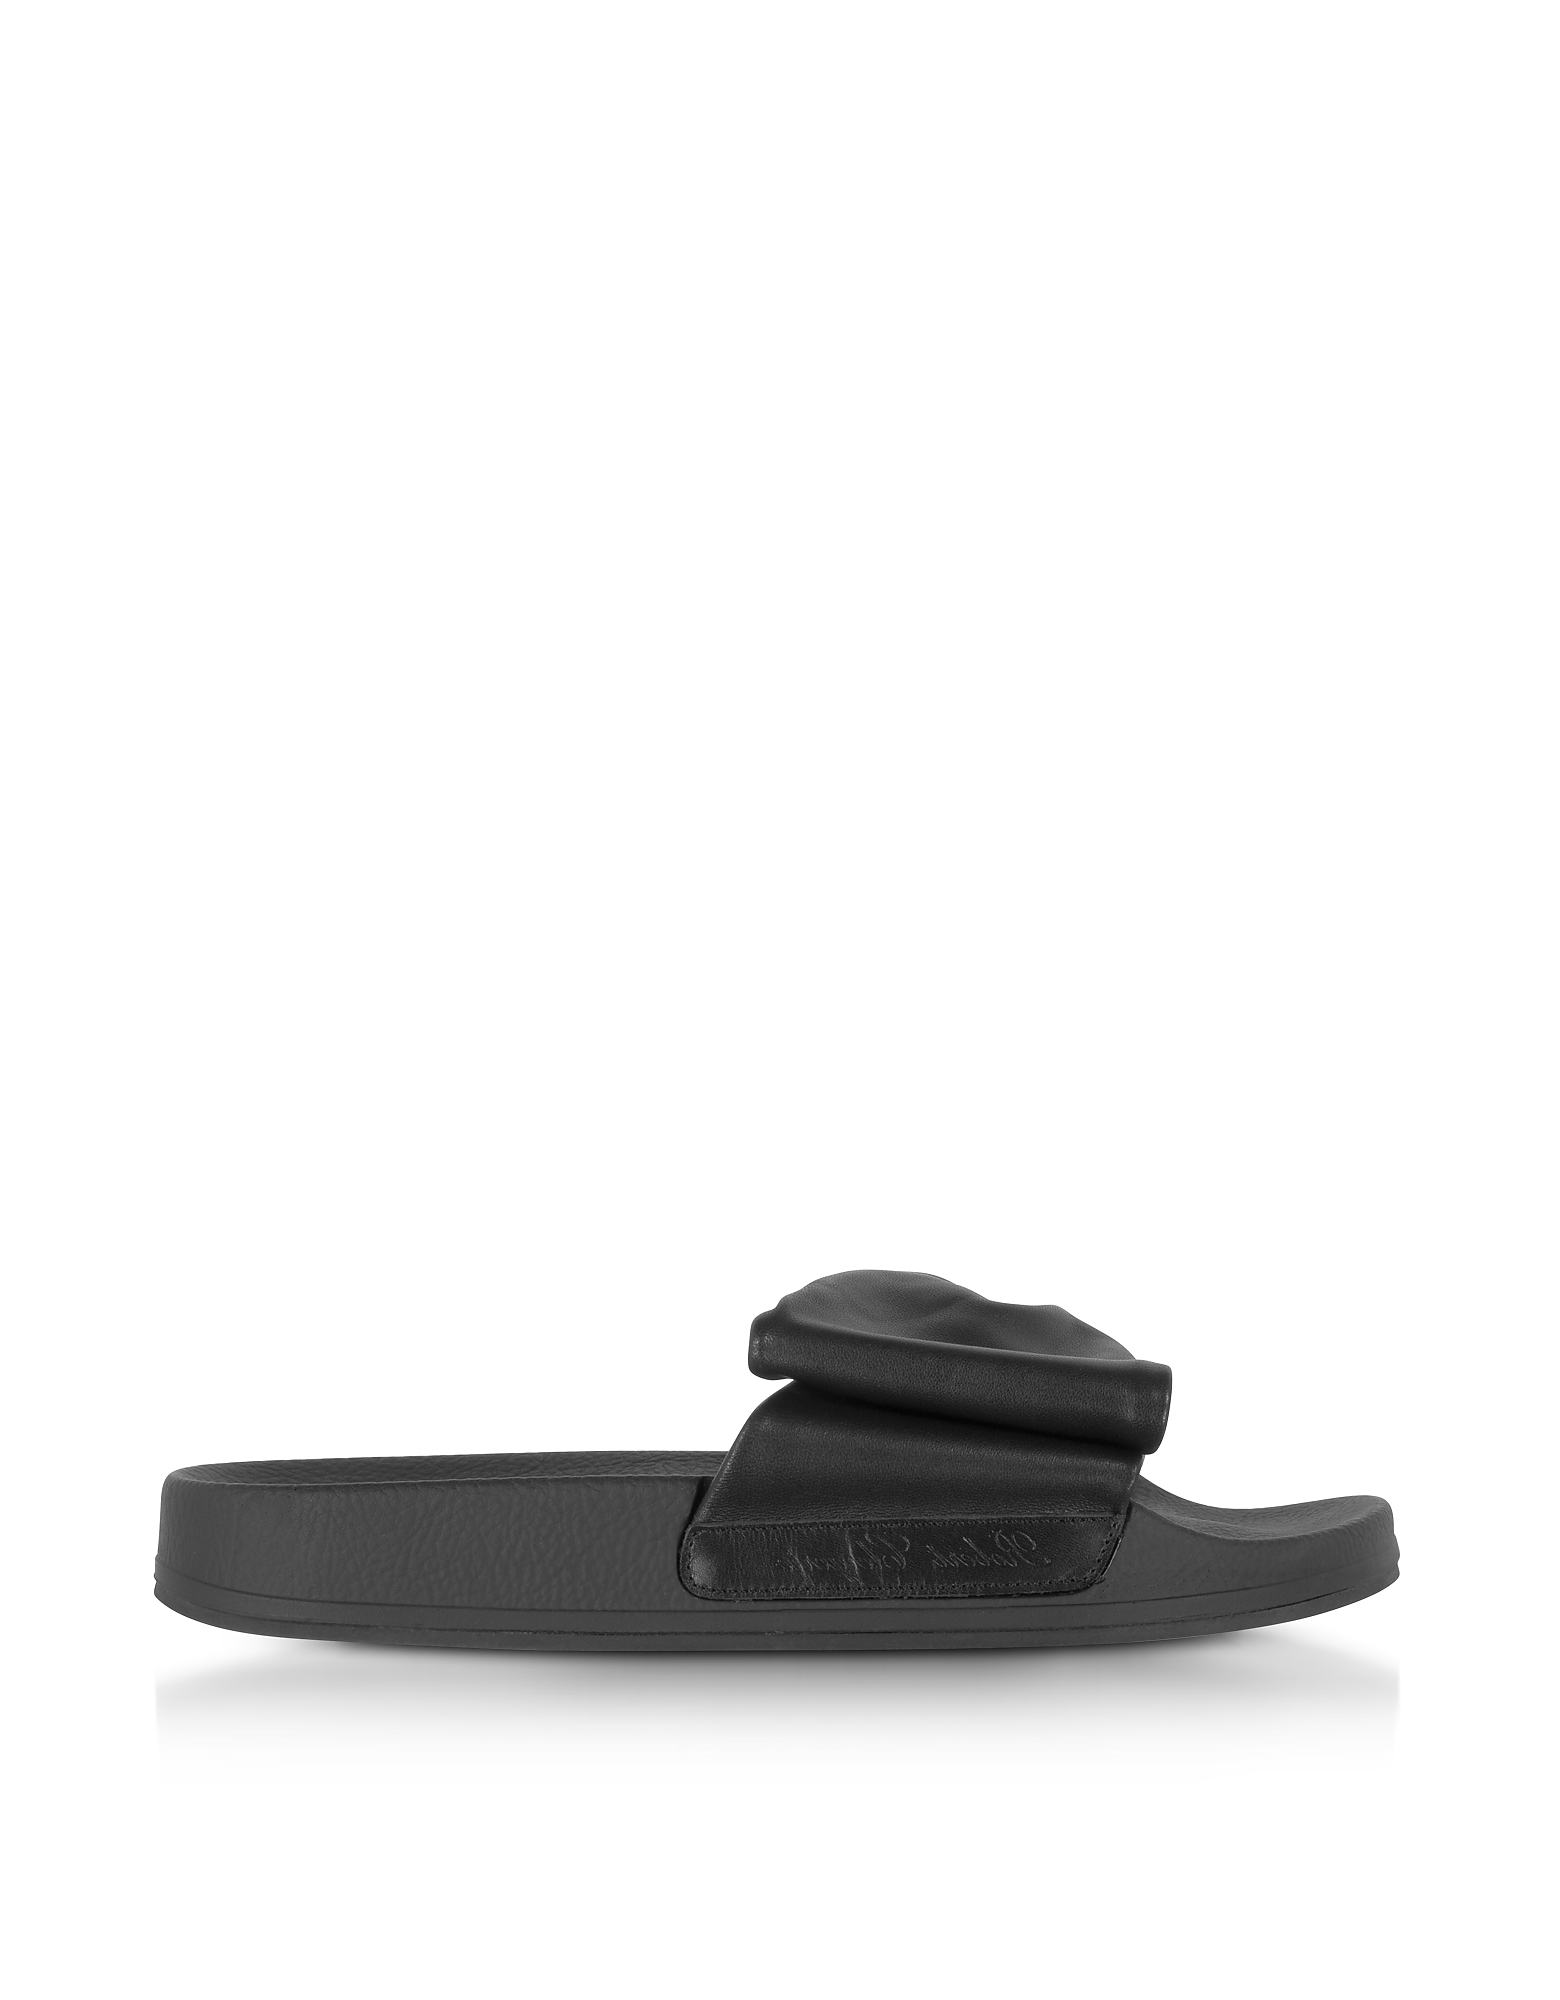 Robert Clergerie Shoes, Wendy Black Leather Slide Sandals w/Black Sole